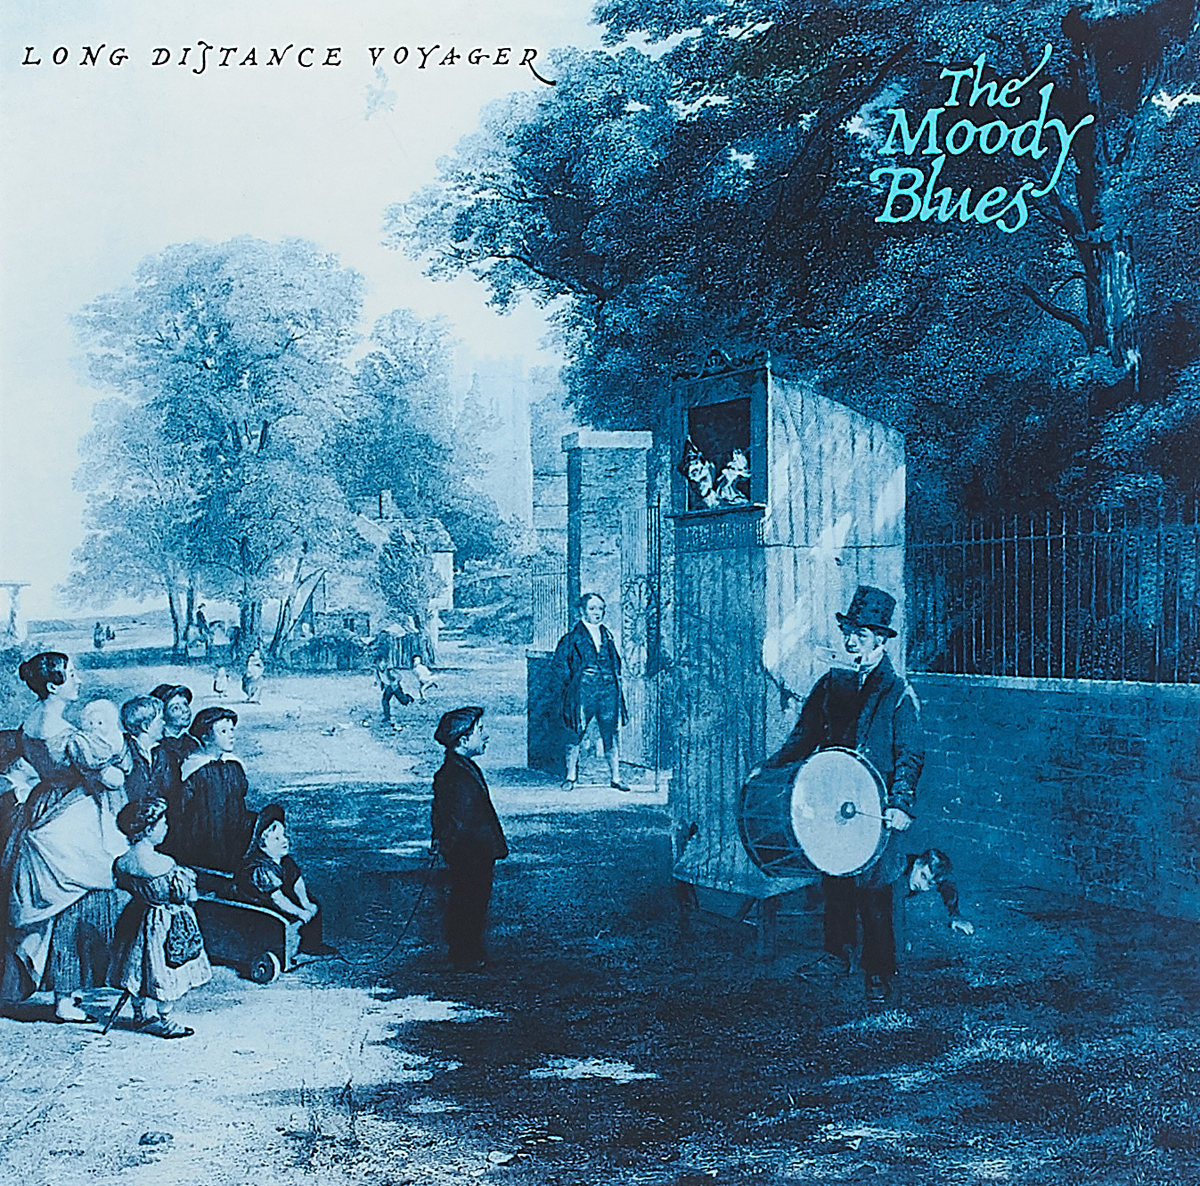 The Moody Blues The Moody Blues Long Distance Voyager LP